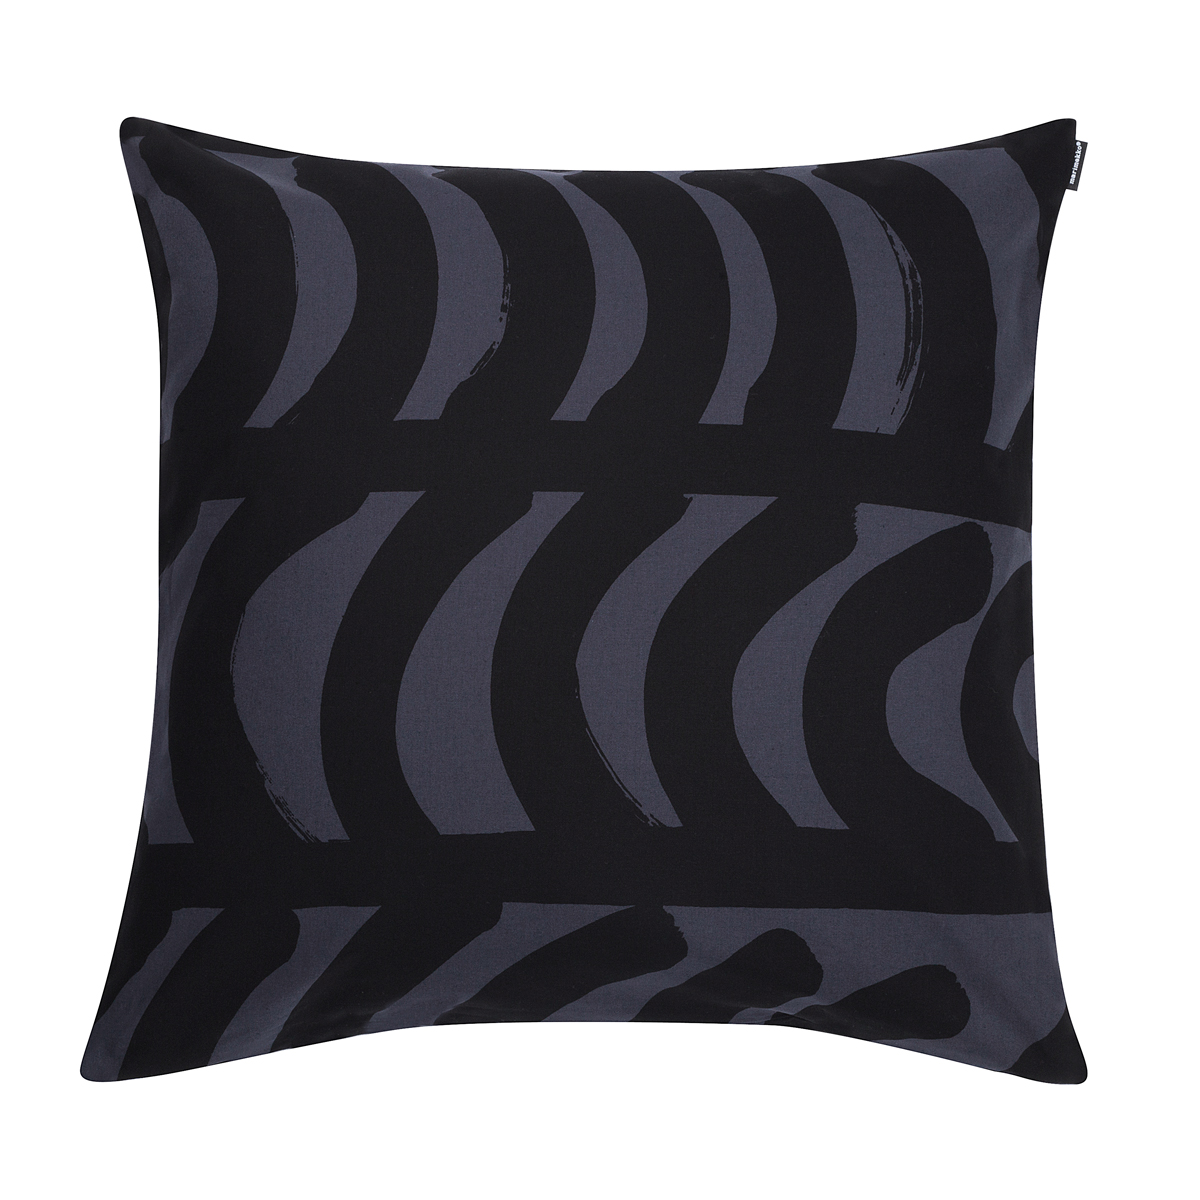 throw pillow geometry blanket cushion covers decorative gallery pillows hosl amazoncom inch and withe black